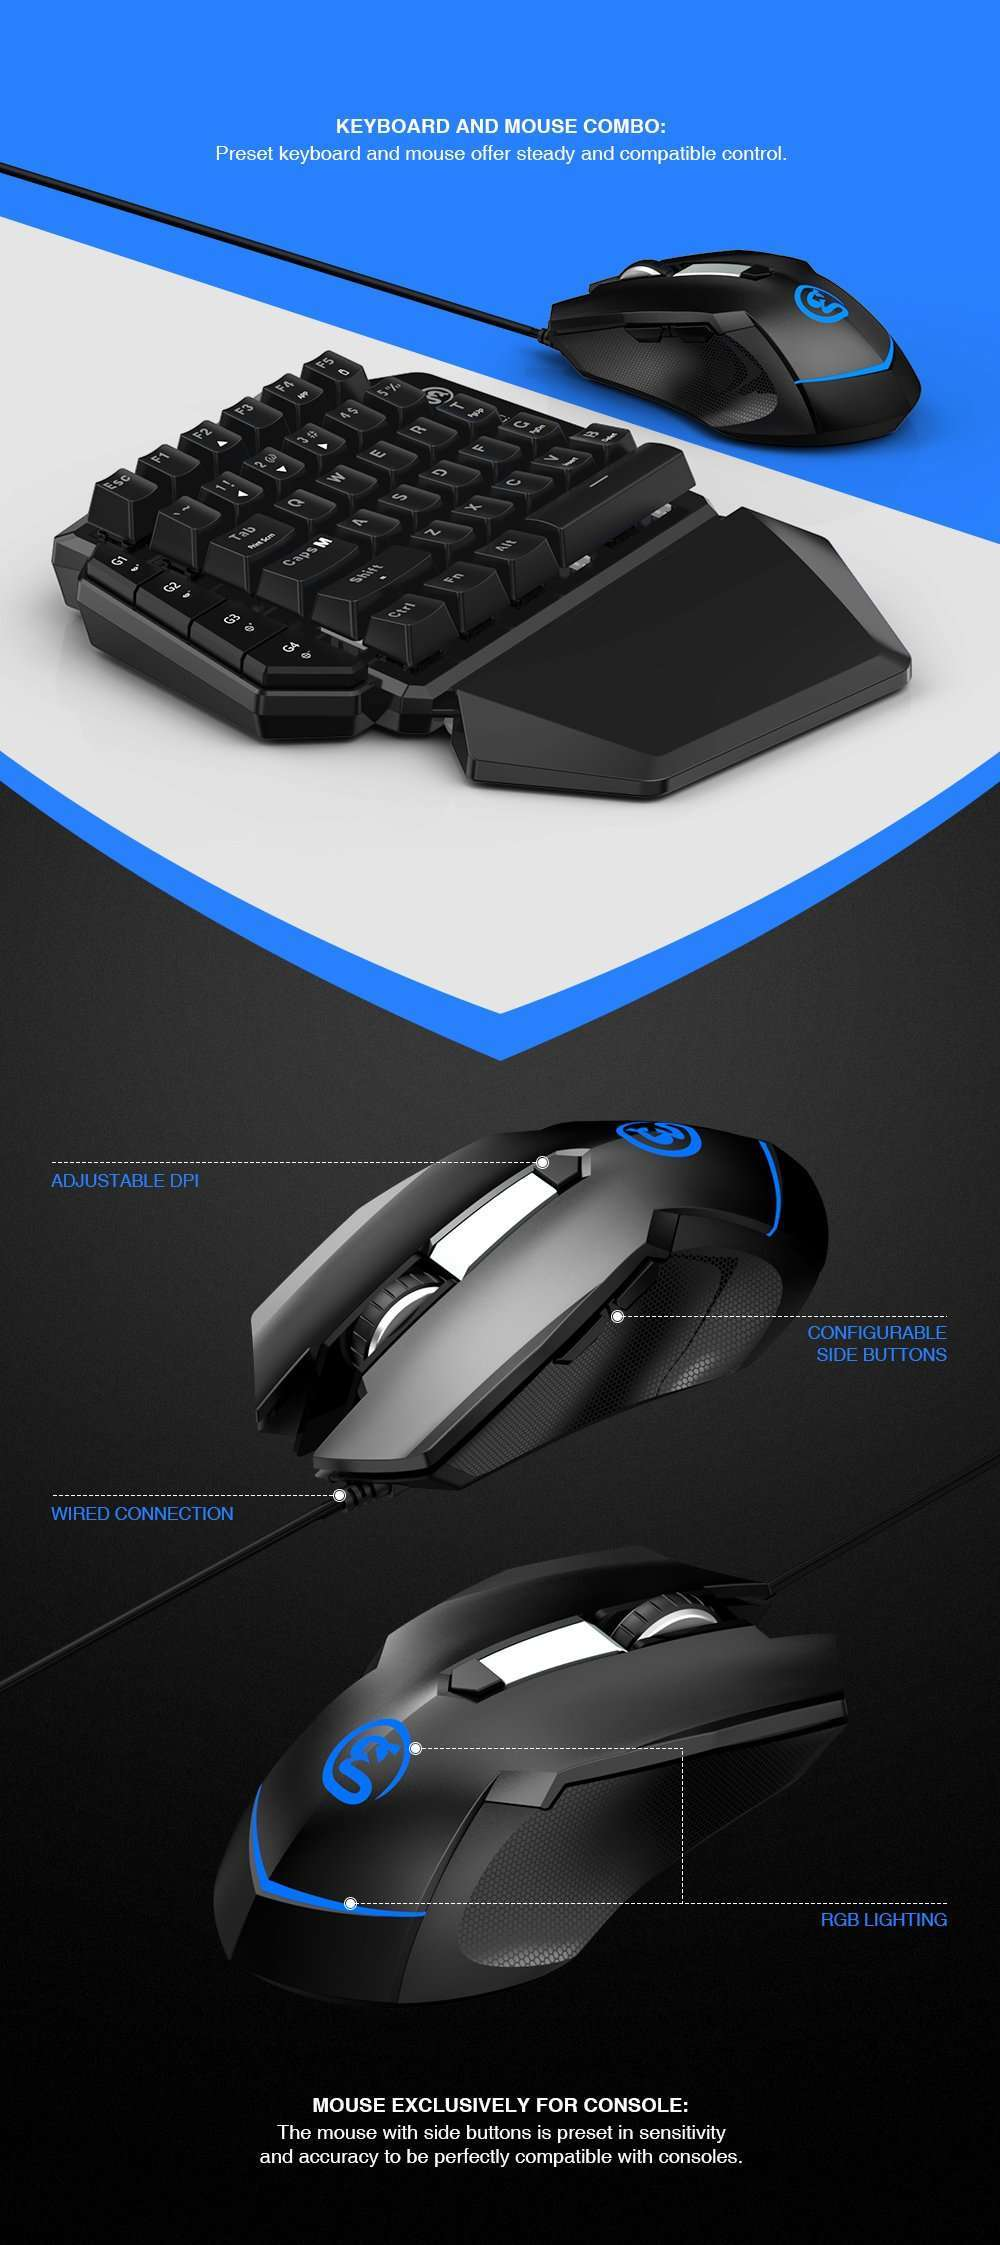 Console Keyboard and Mouse Adapter Combo